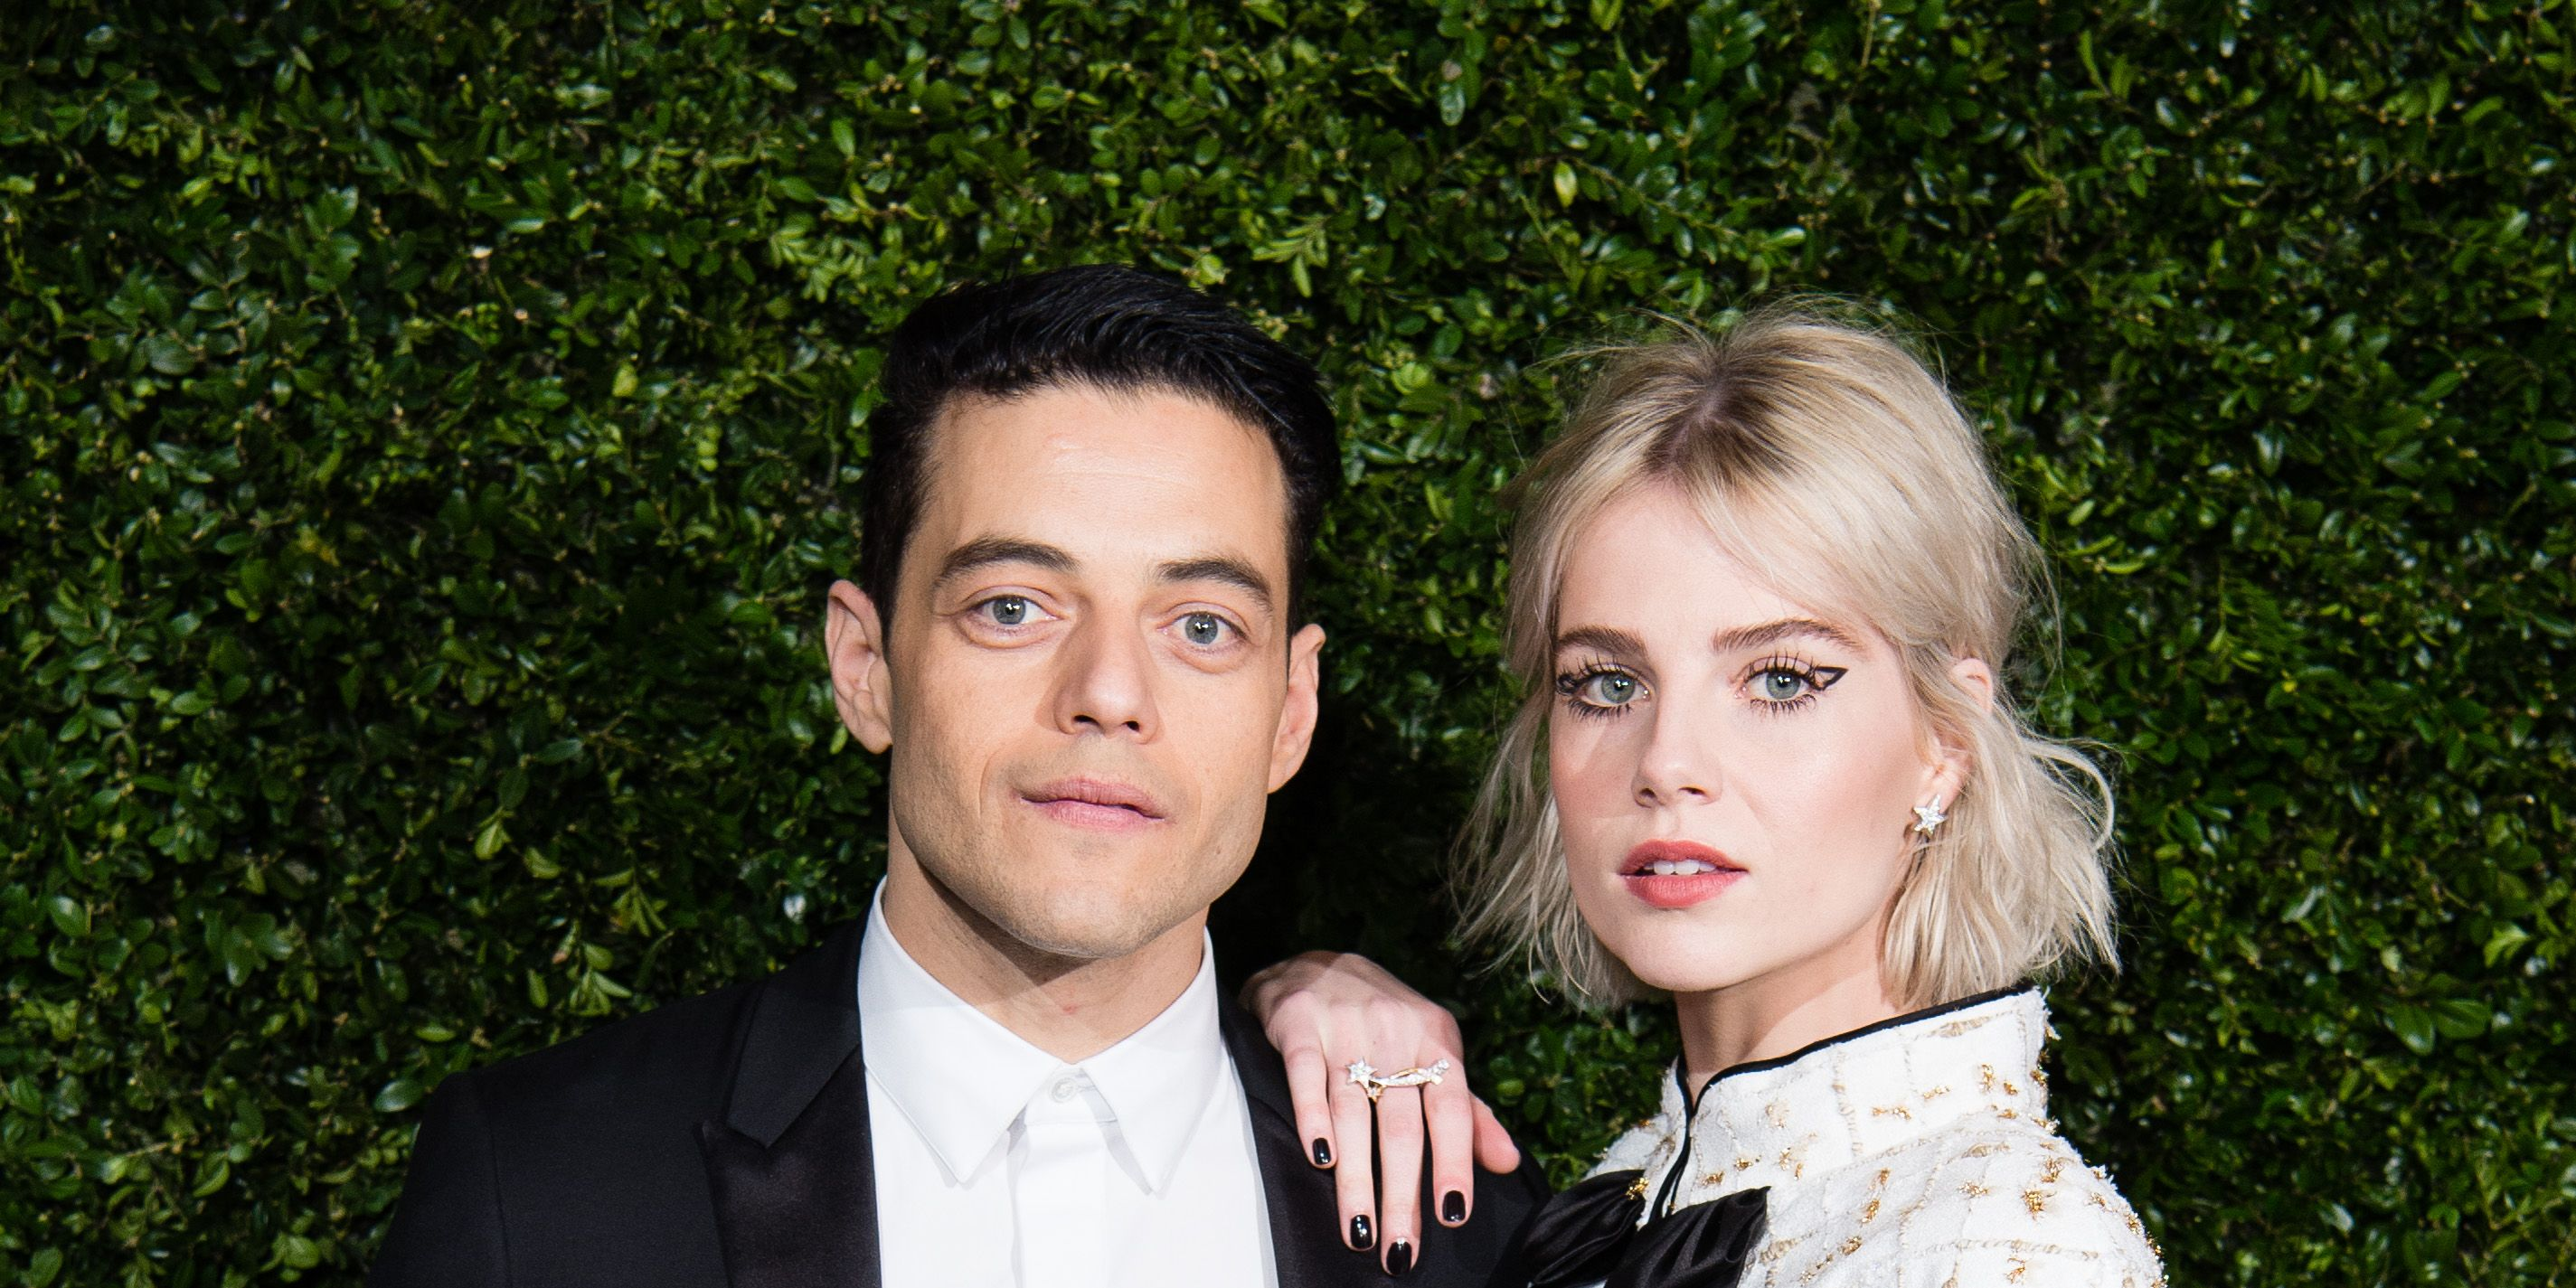 The Charles Finch & Chanel Pre-BAFTA's Dinner